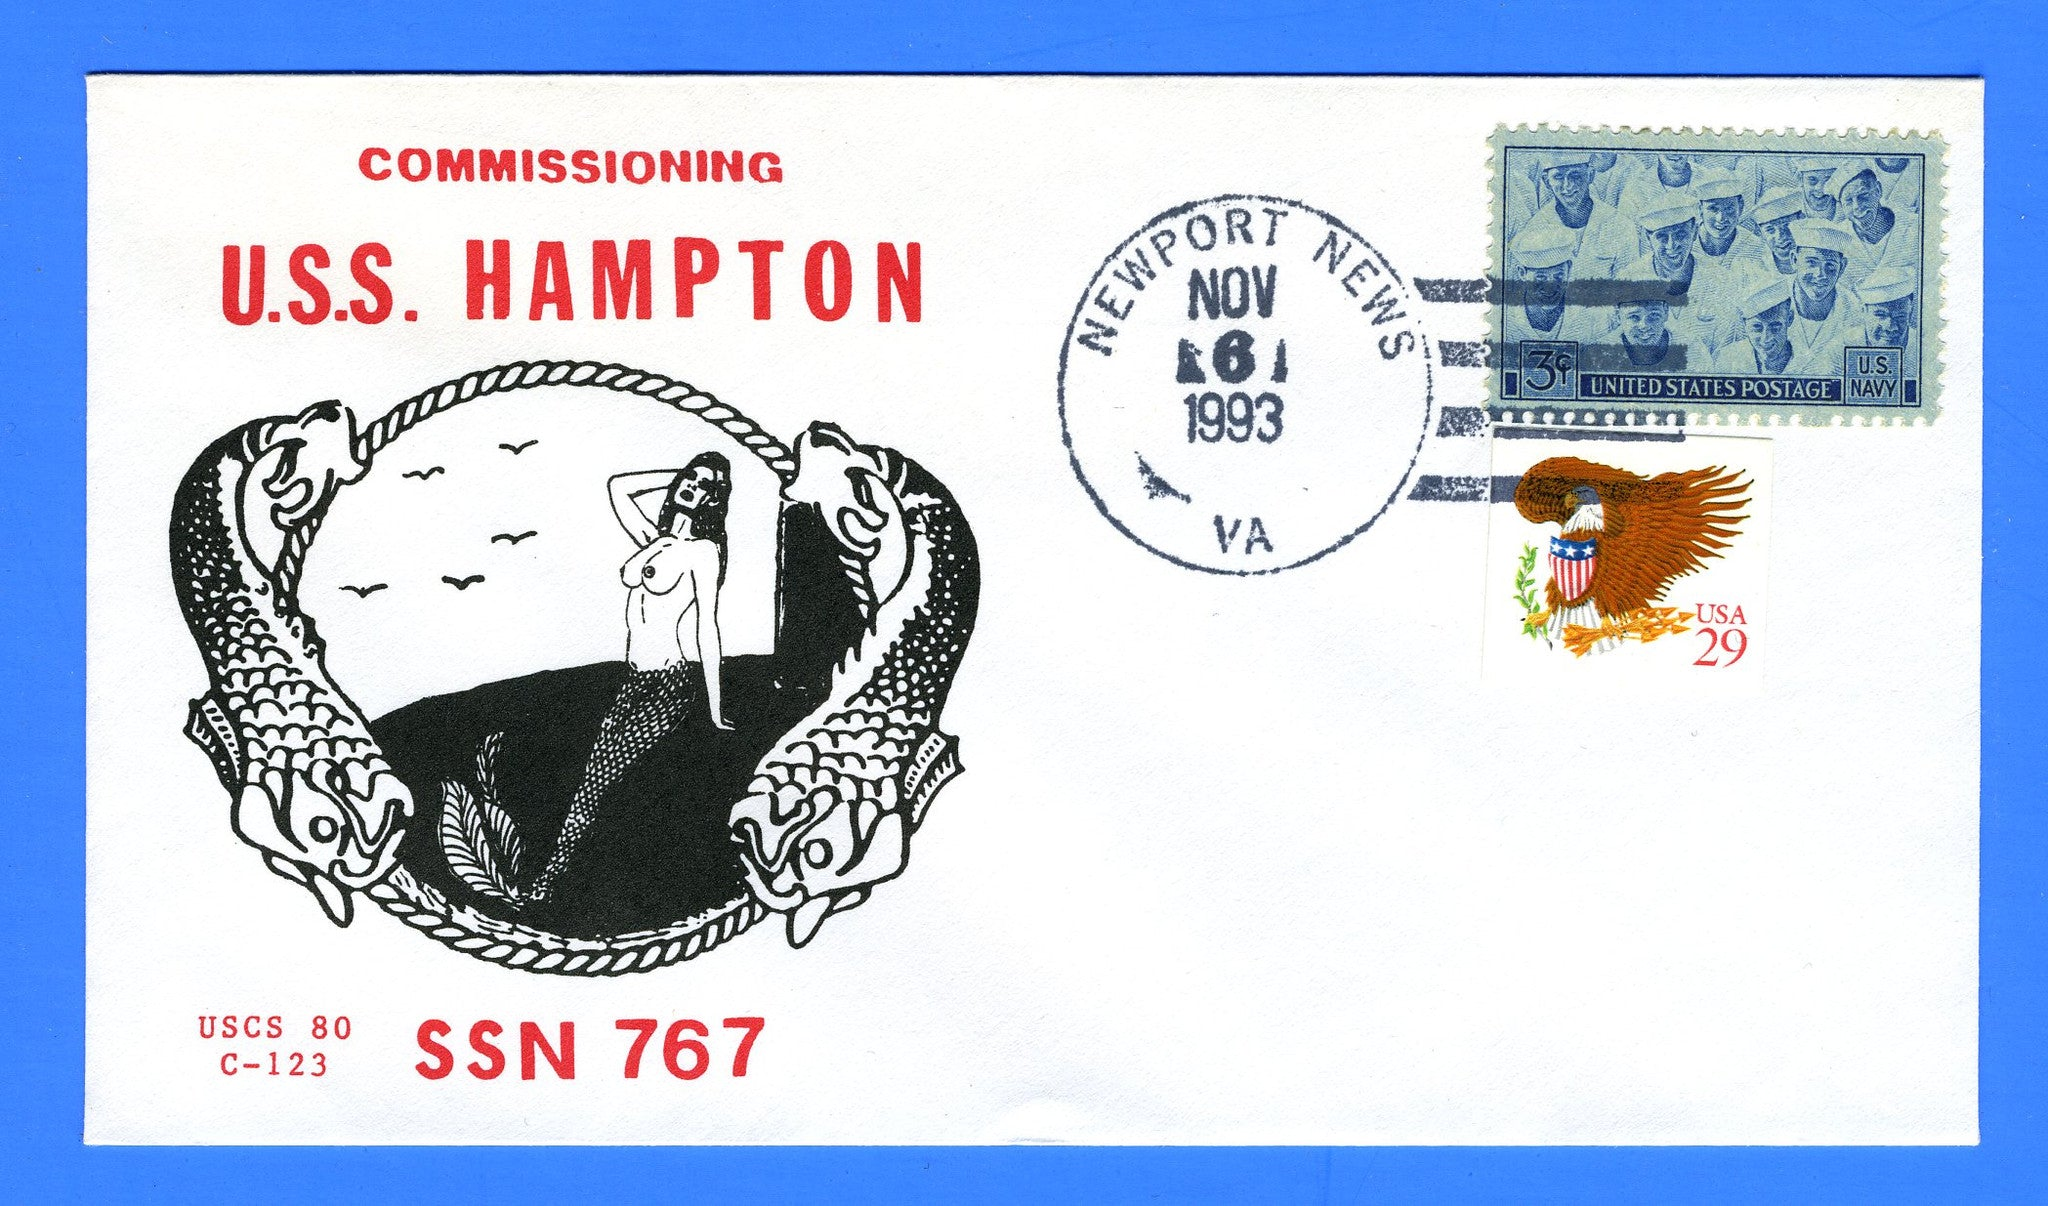 USS Hampton SSN-767 Commissioning November 6, 1993